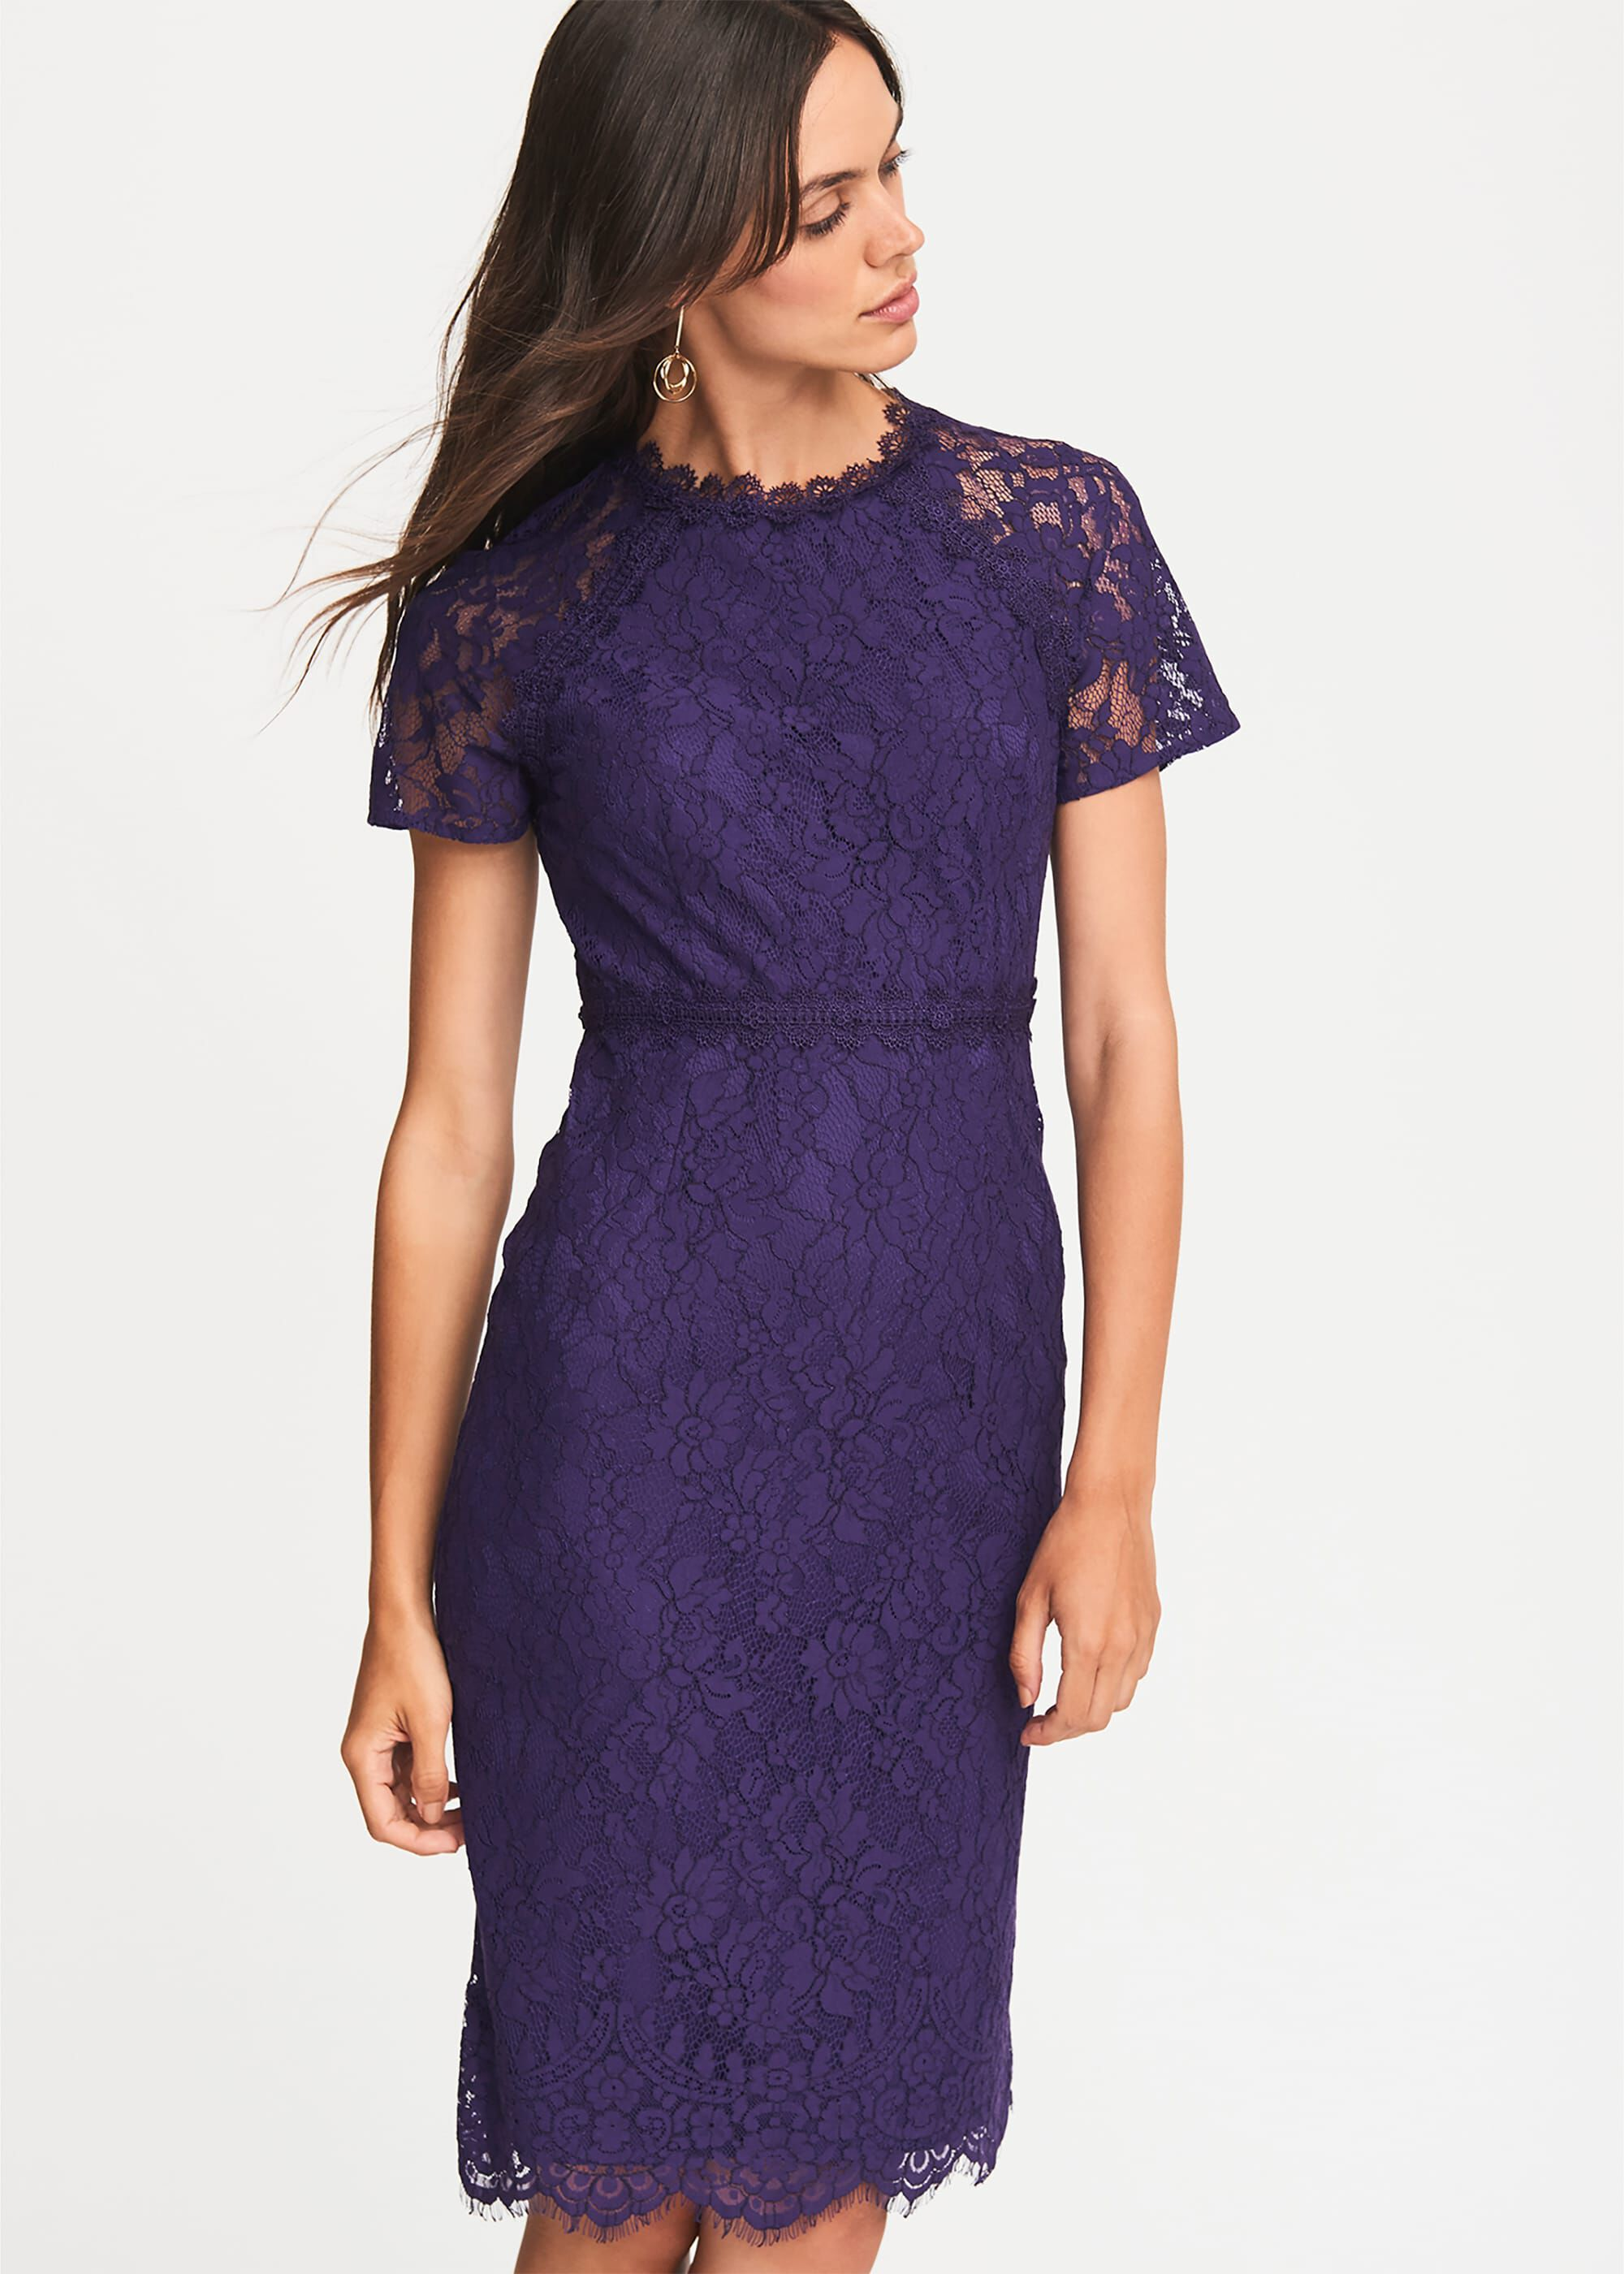 Phase Eight Mirabel Lace Dress, Purple, Fitted